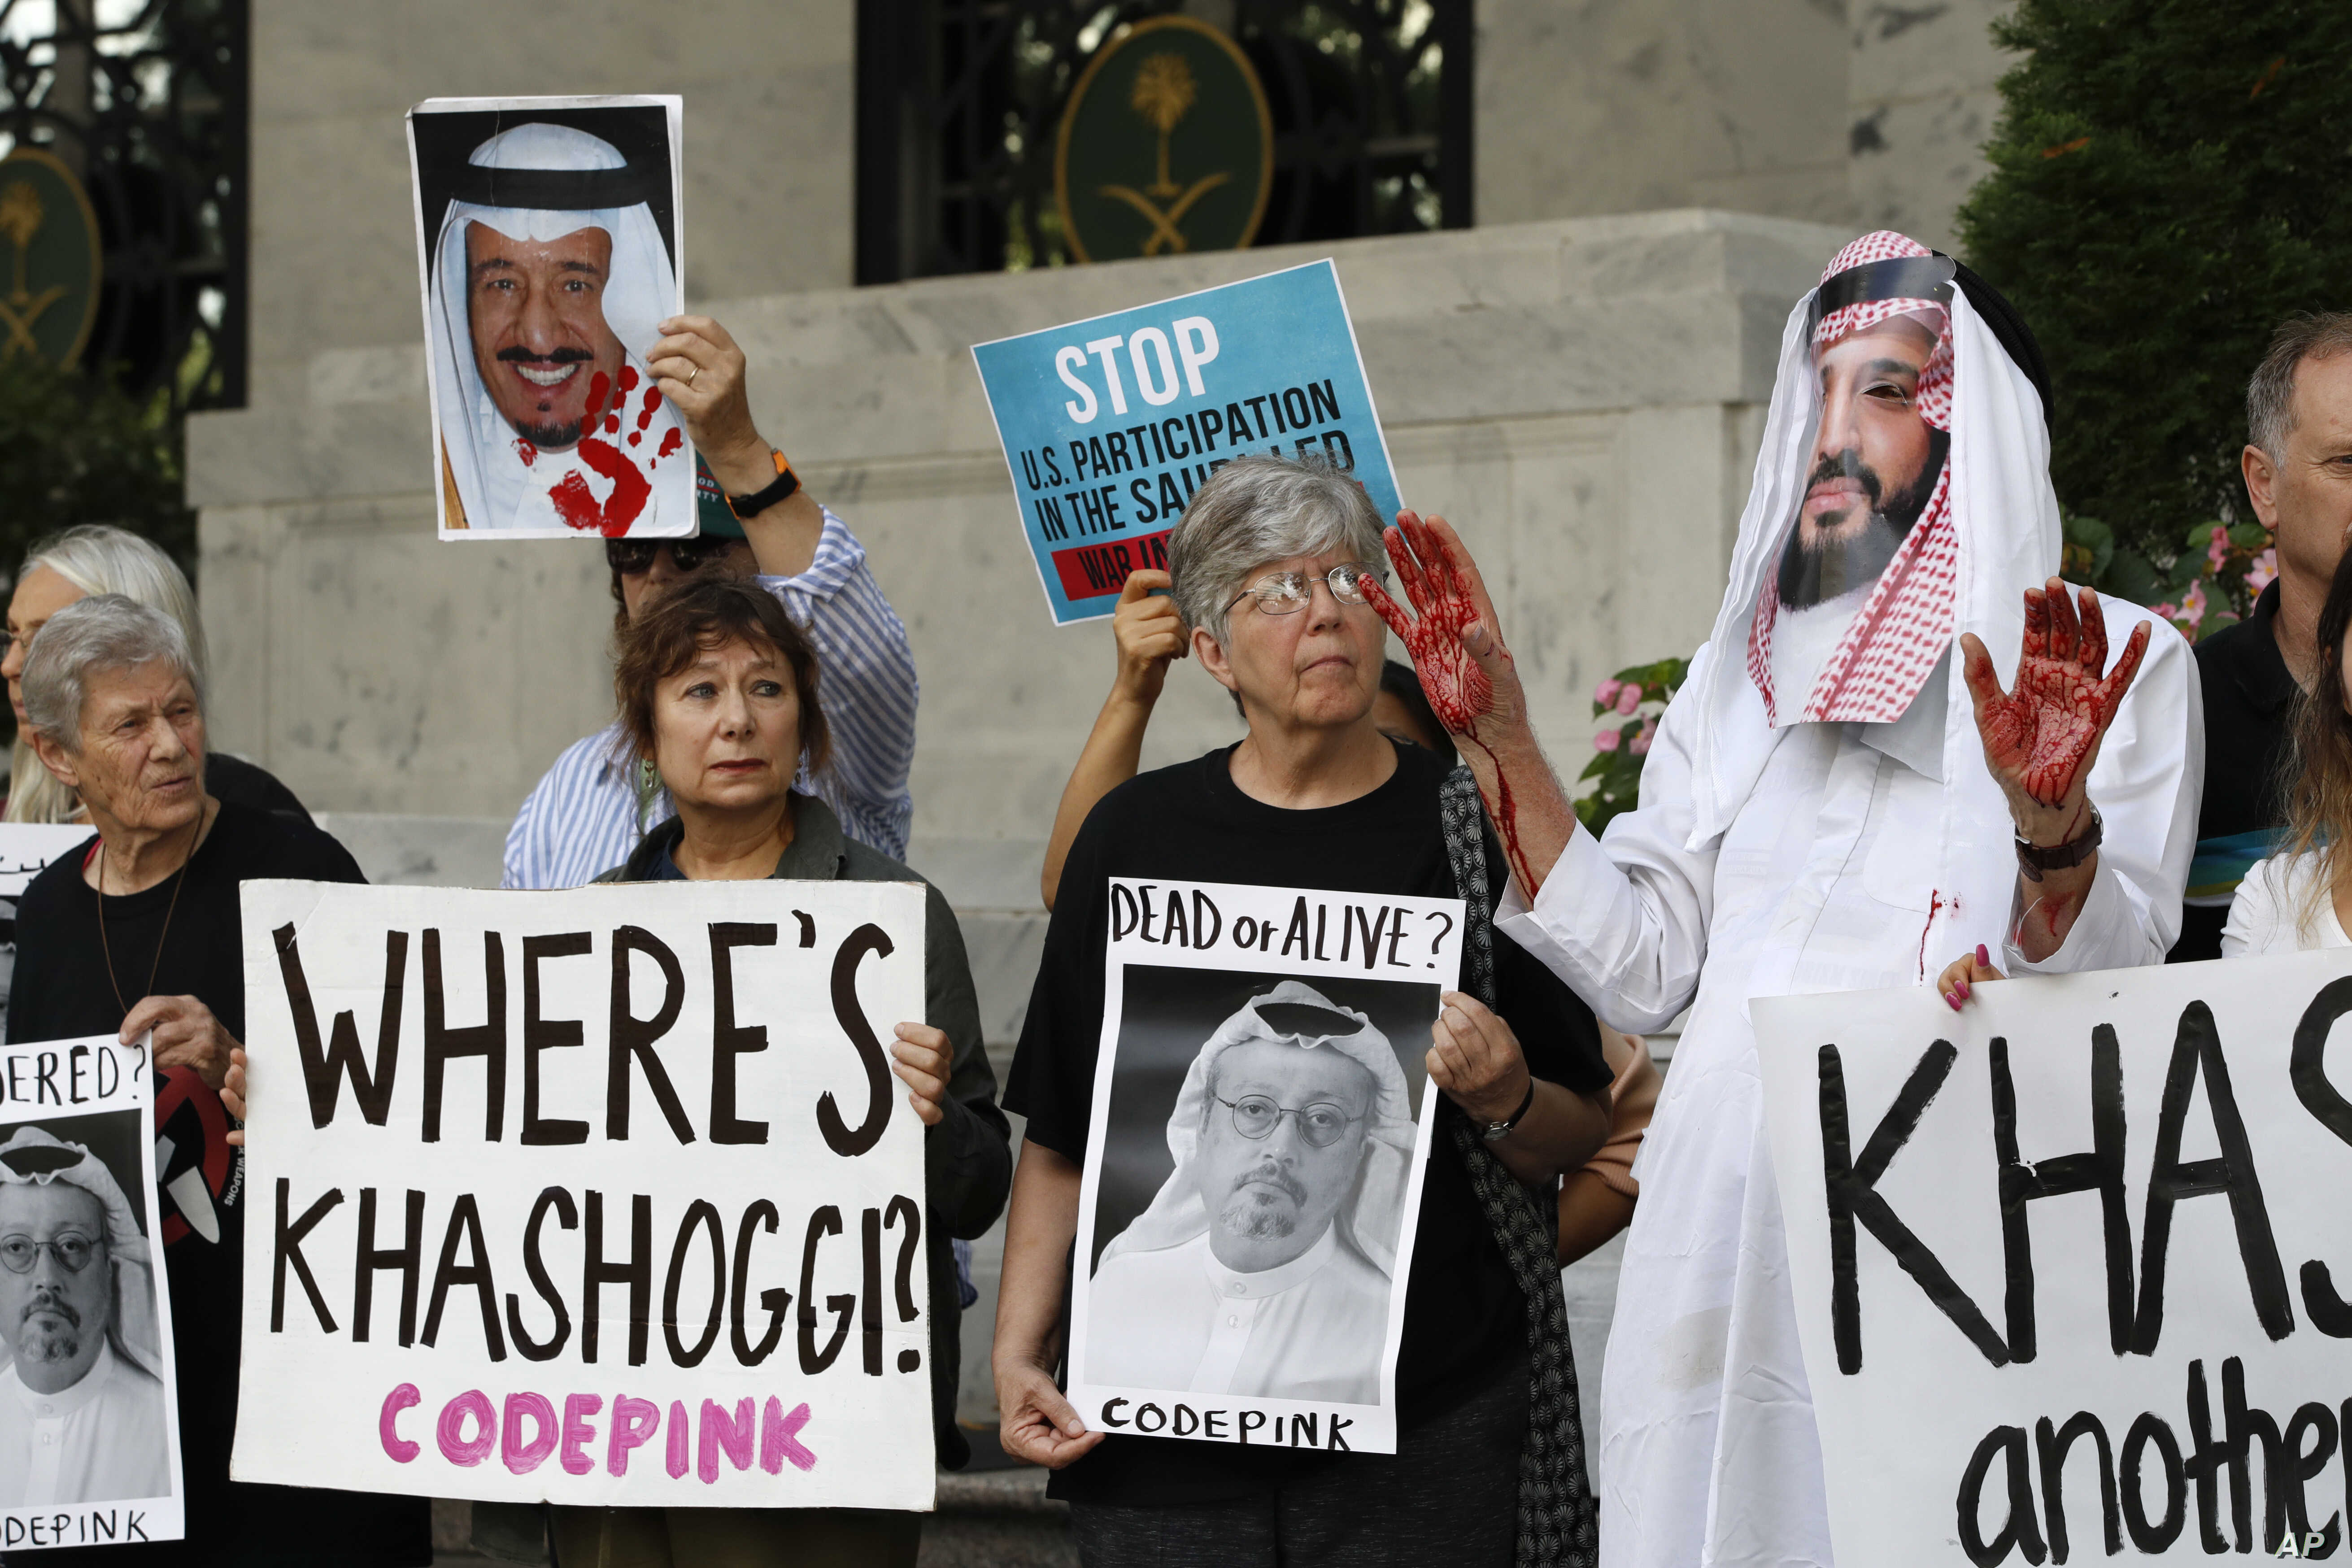 People hold signs at the Embassy of Saudi Arabia during a protest about the disappearance of Saudi journalist Jamal Khashoggi, Oct. 10, 2018, in Washington.